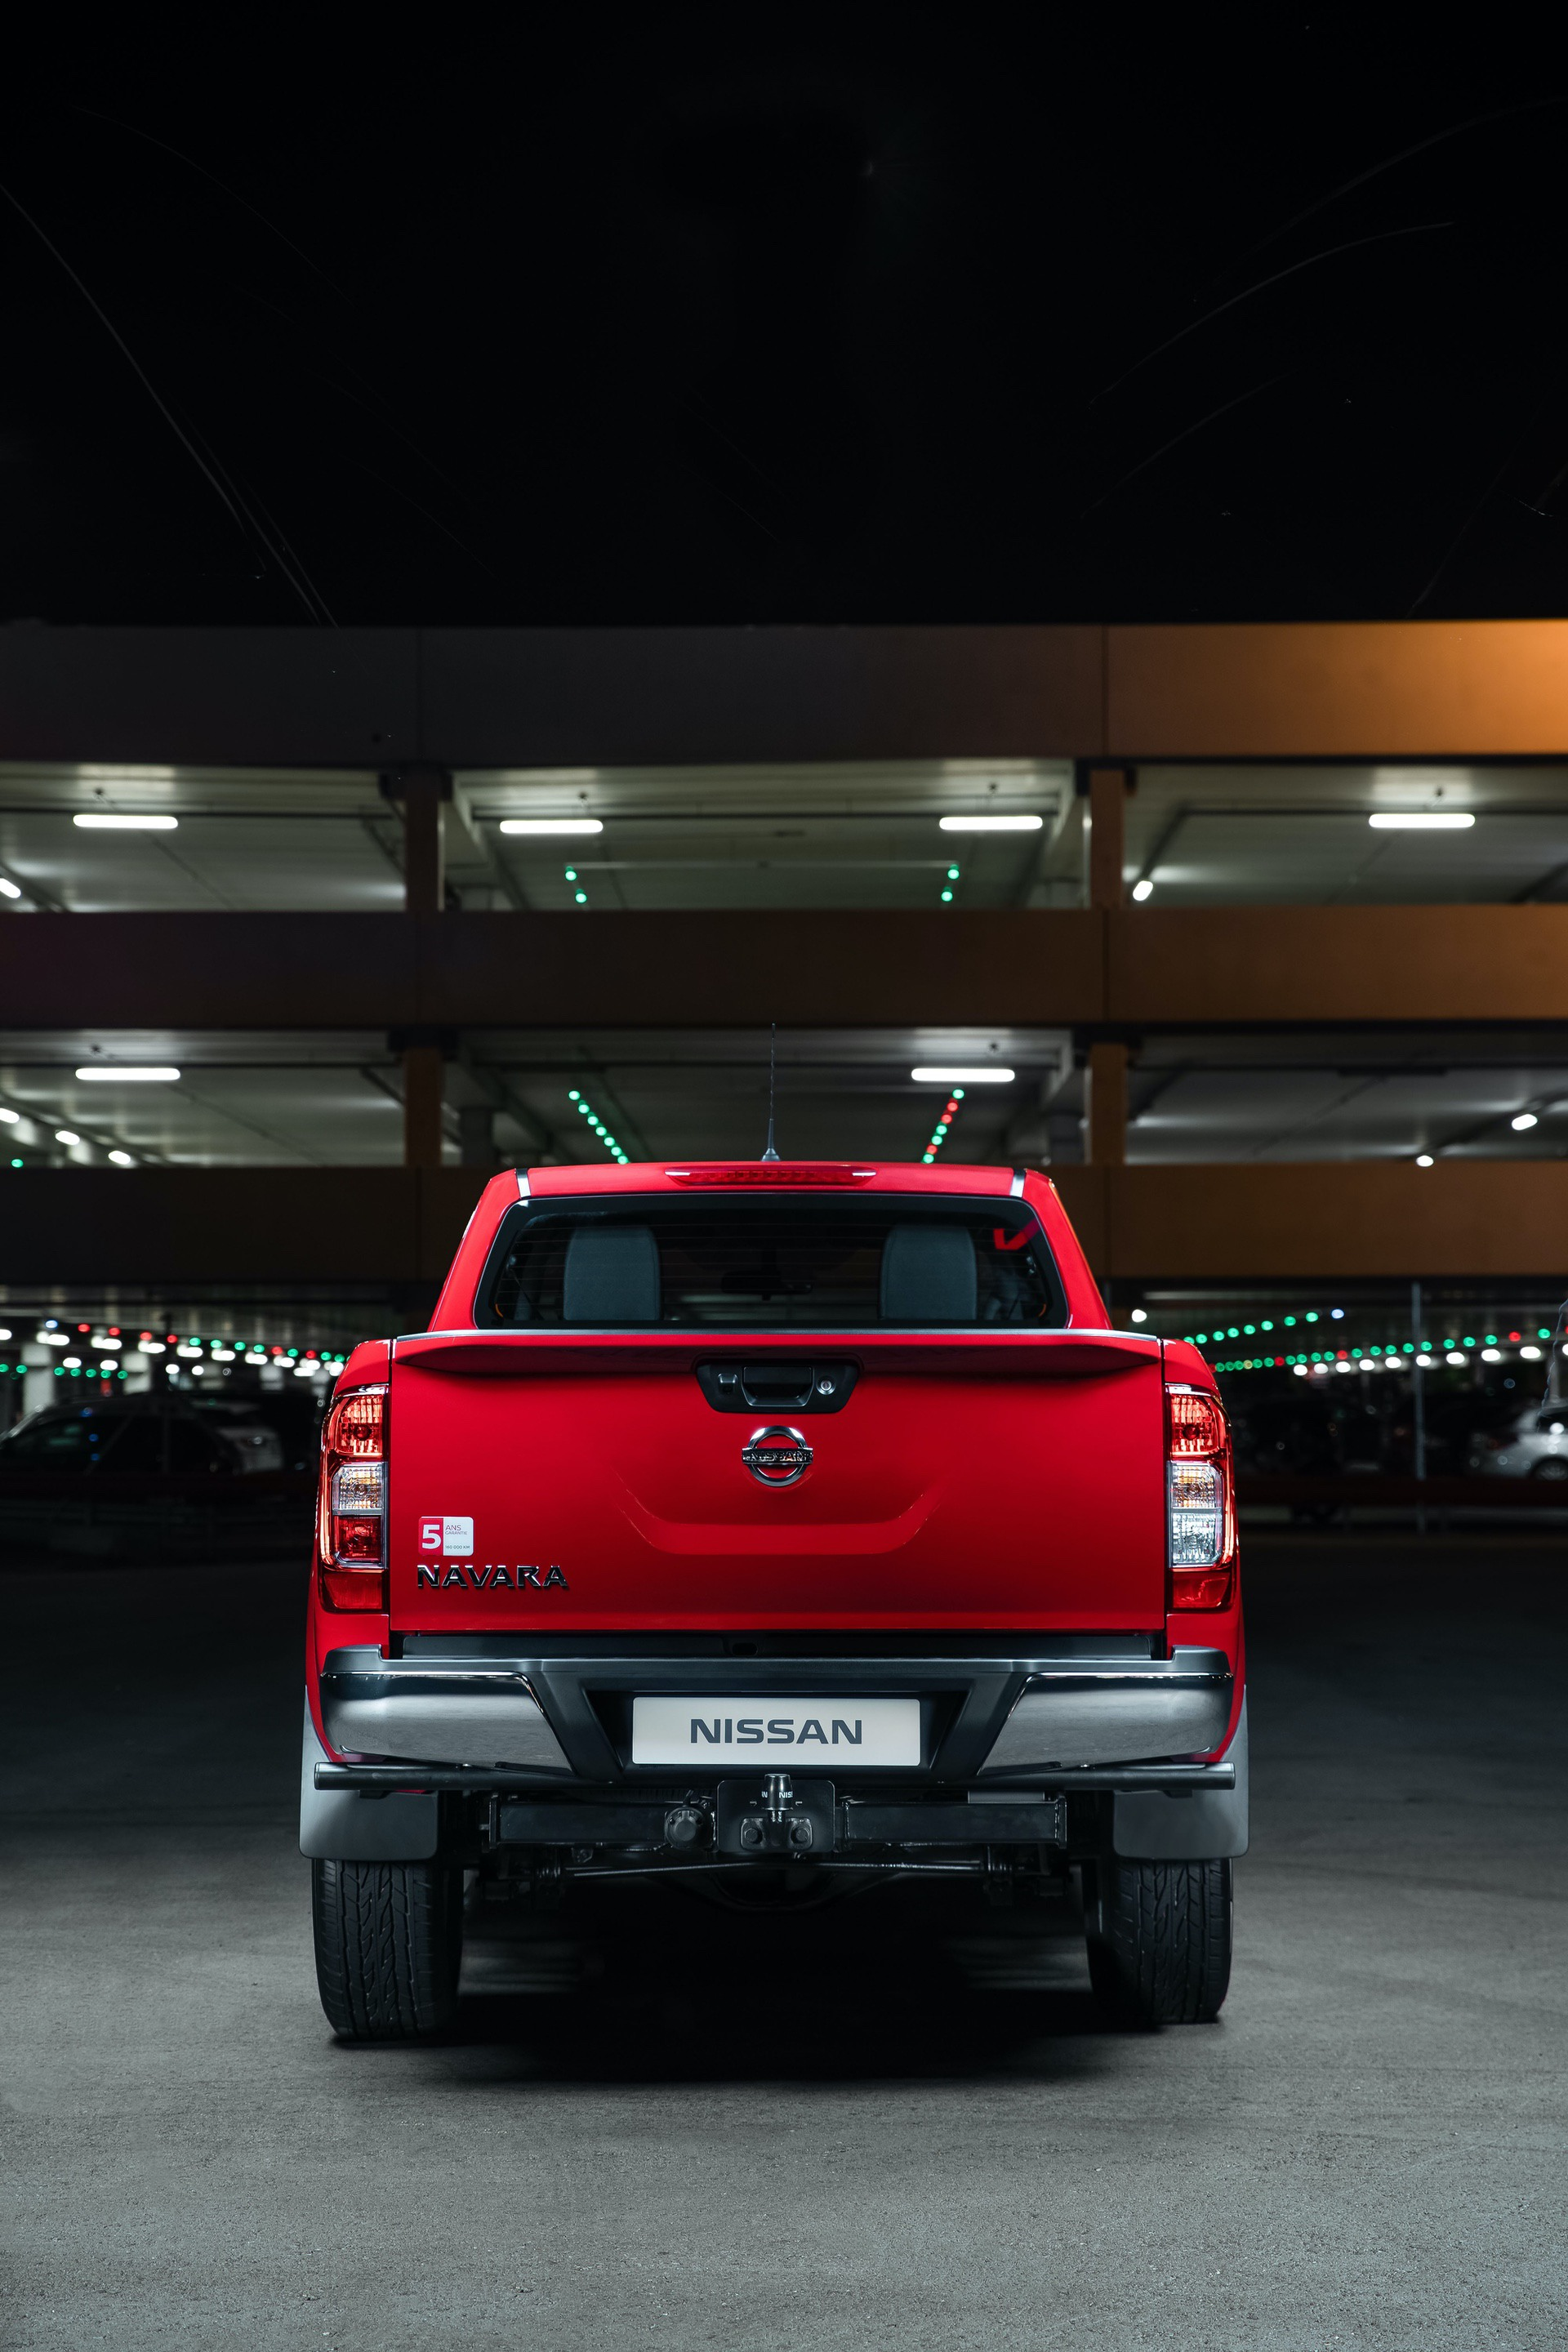 Nissan-Navara-King-Cab-Red-Rear-straight